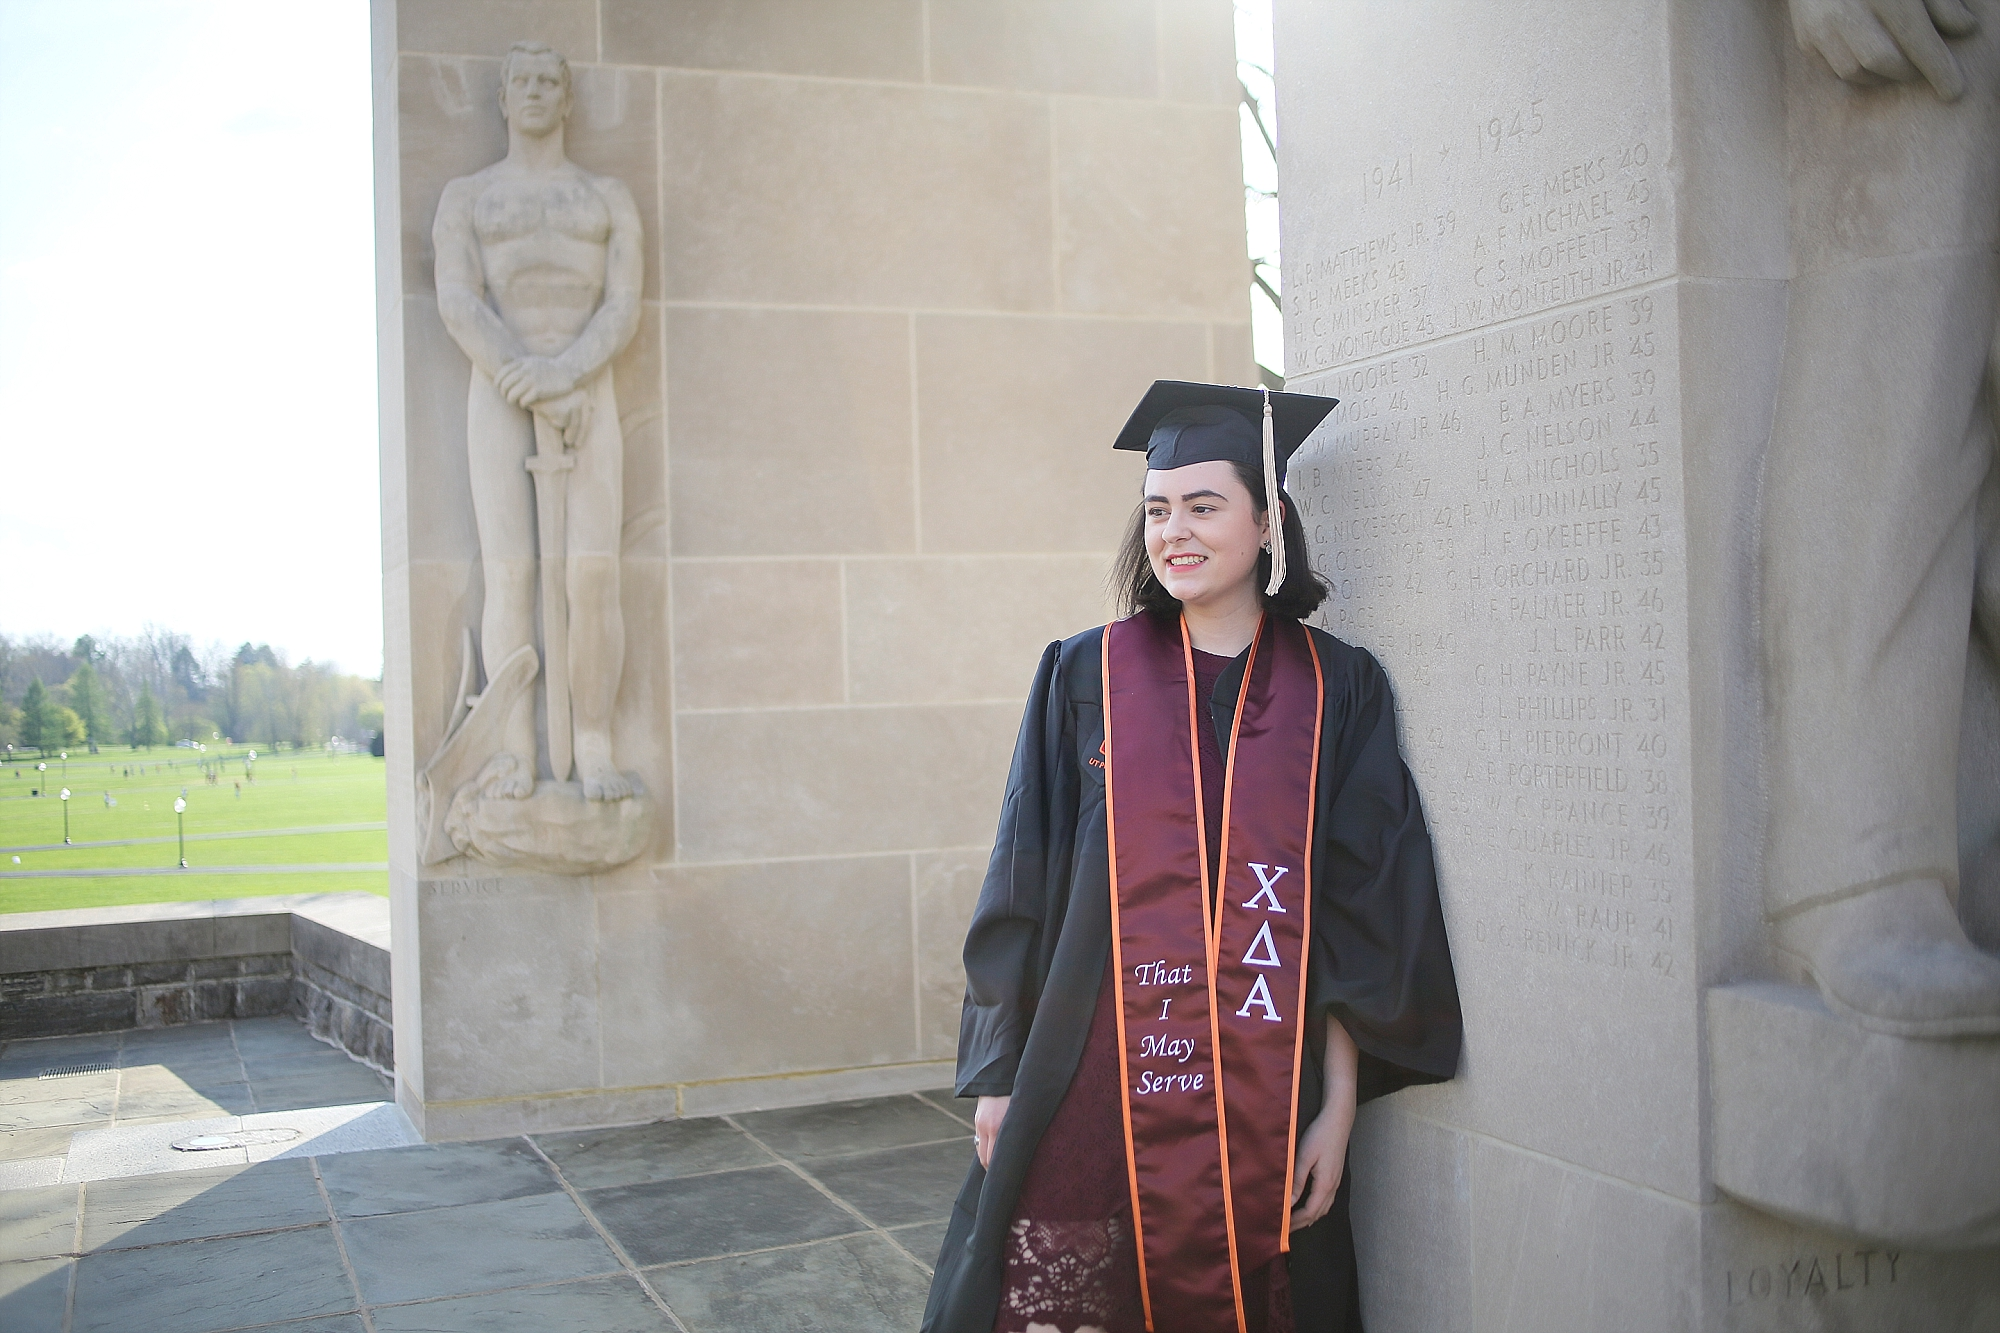 Charlie | Virginia Tech Graduation Portrait Photographer, Holly Cromer